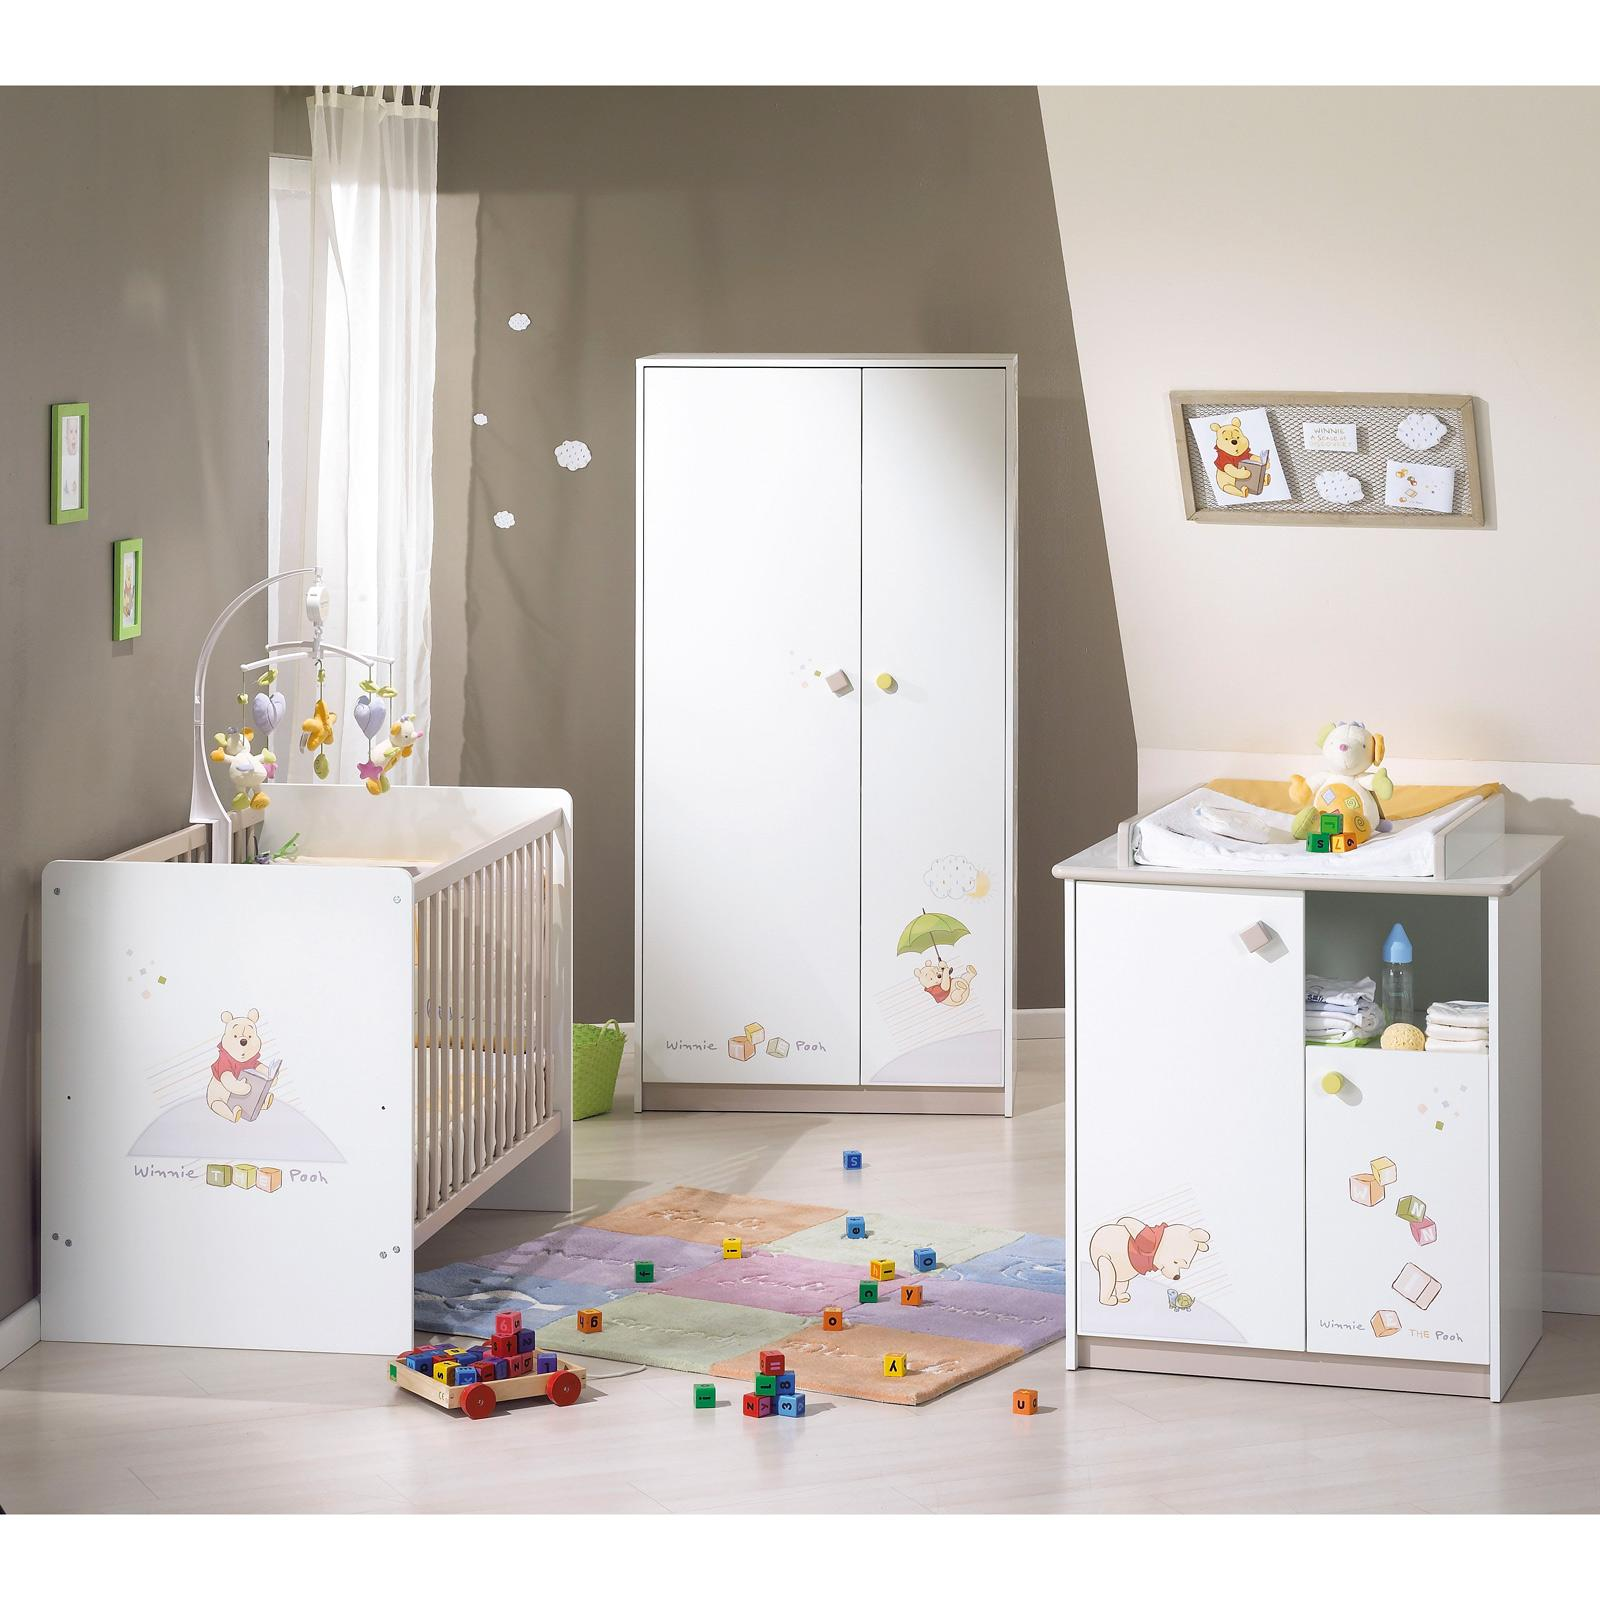 Decoration chambre winnie l ourson pas cher for Decoration pour maison pas cher